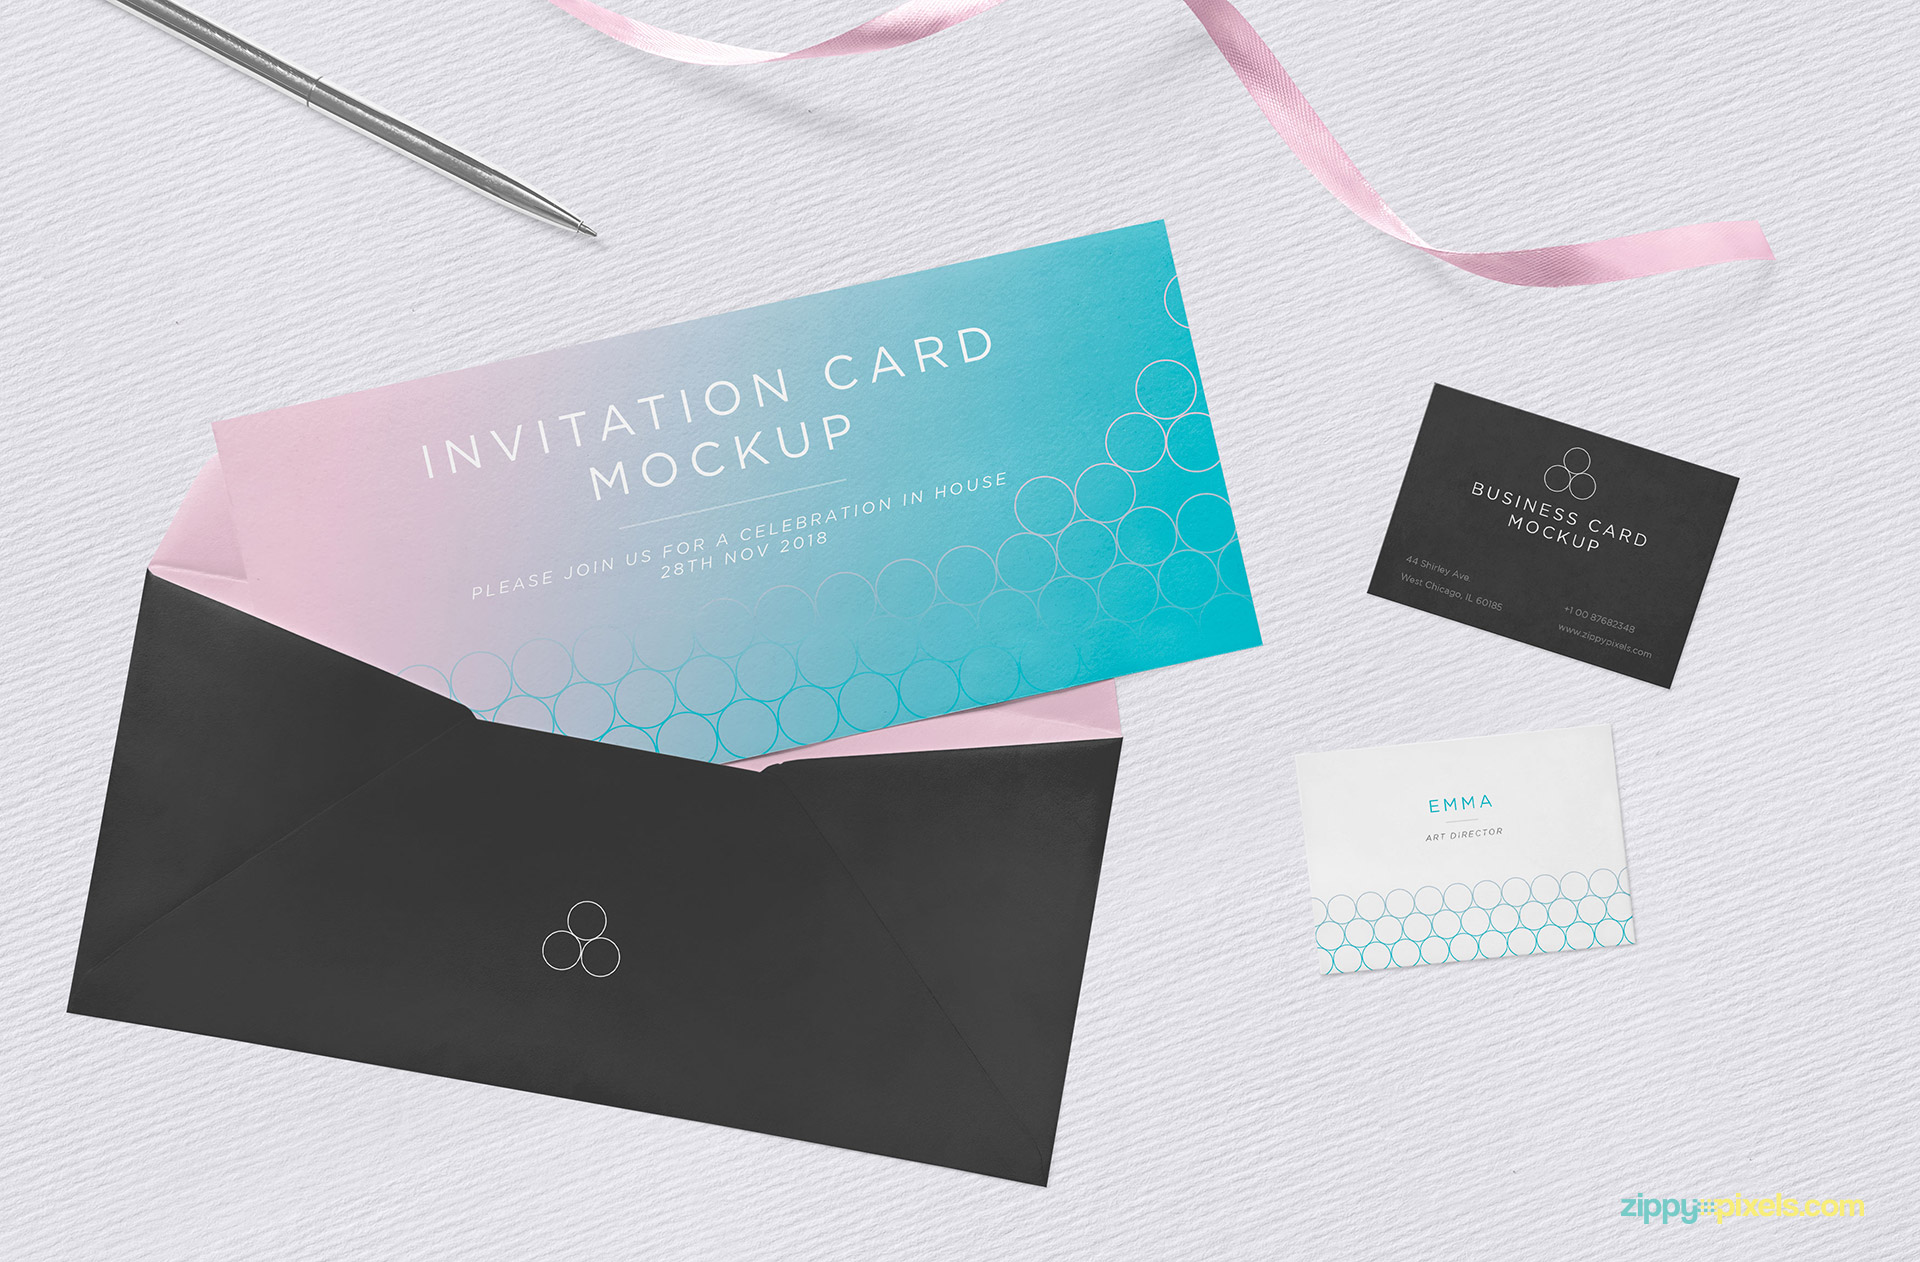 Free invitation mockup PSD.